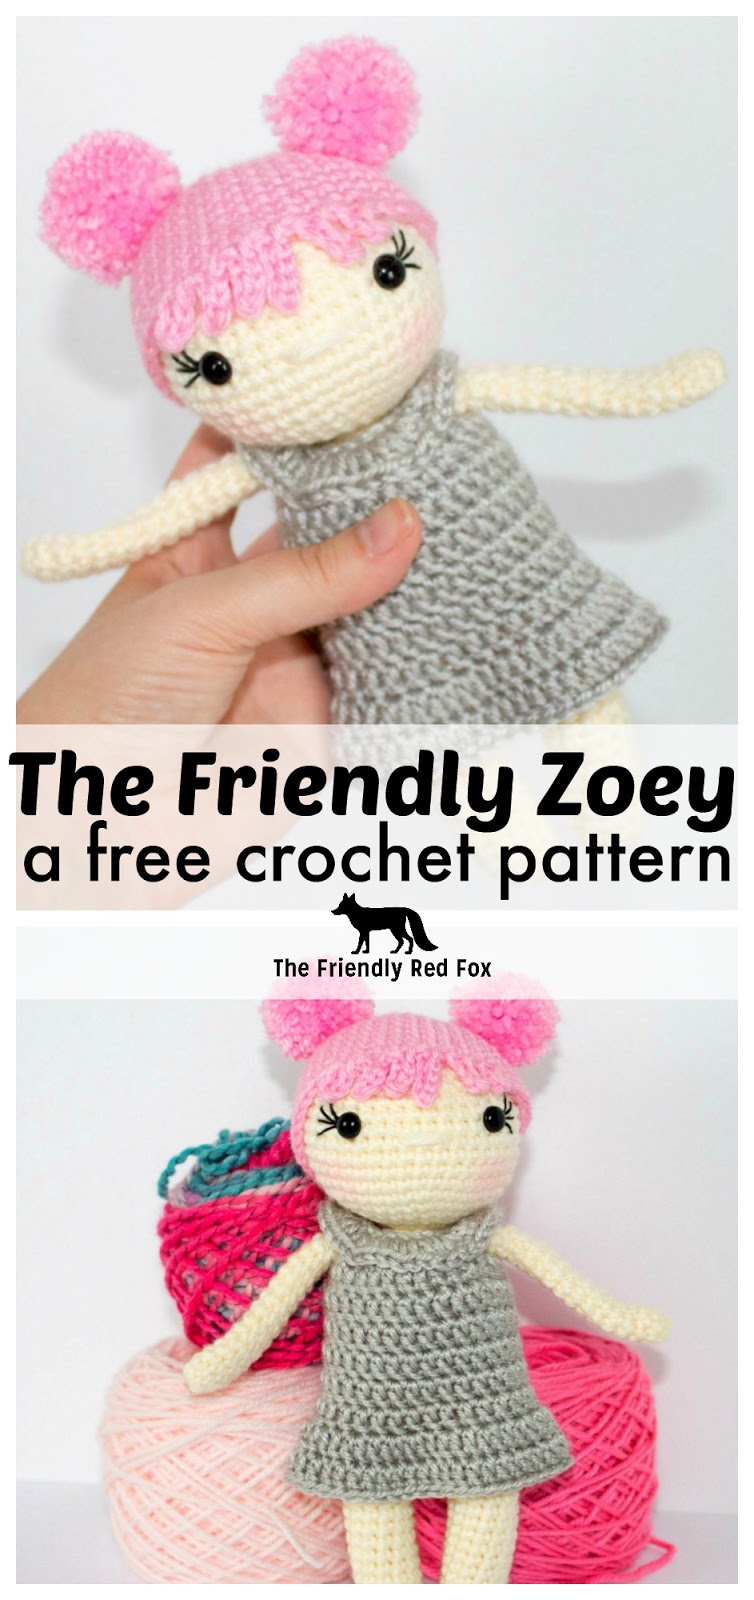 How to make small amigurumi hands with fingers: crafty_shanna ... | 1600x754